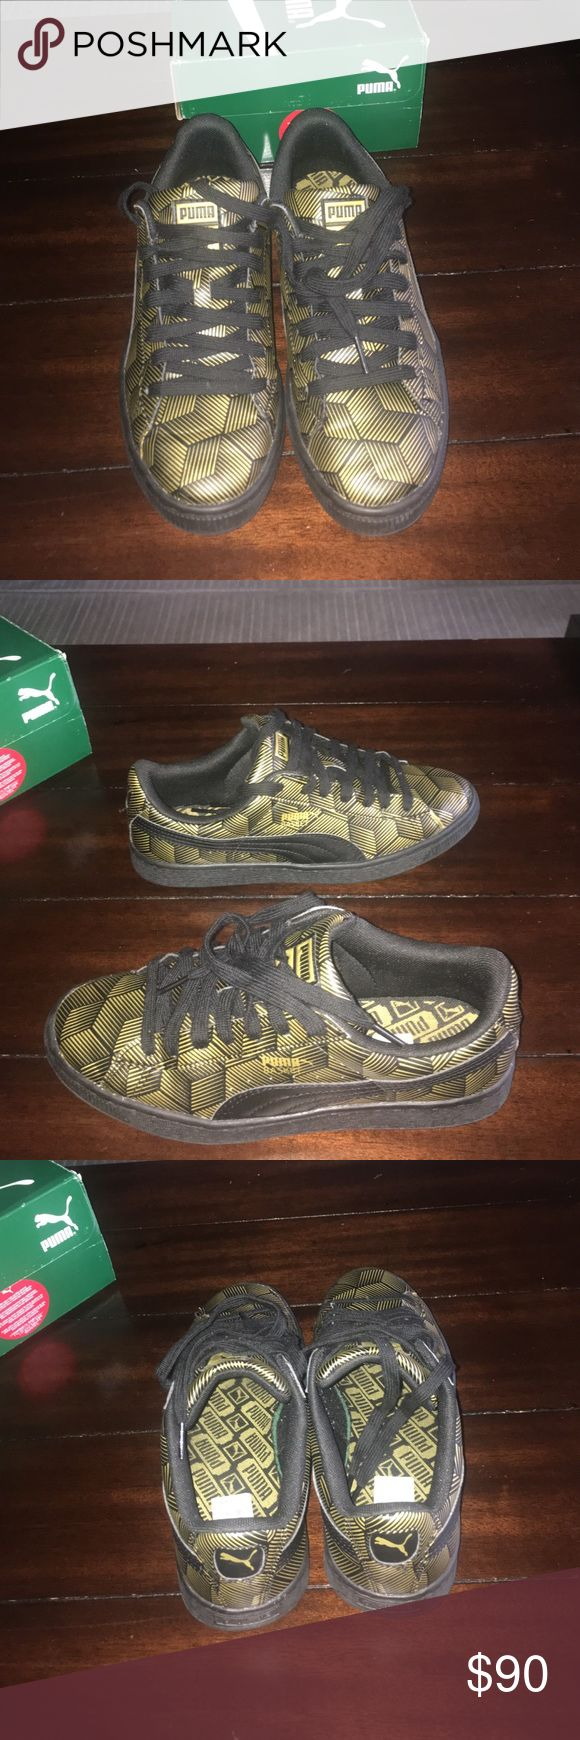 Black and gold metallic Puma's Size 7.5 in women's size:5.5 in men's comes with original box worn once very comfortable Puma Shoes Sneakers